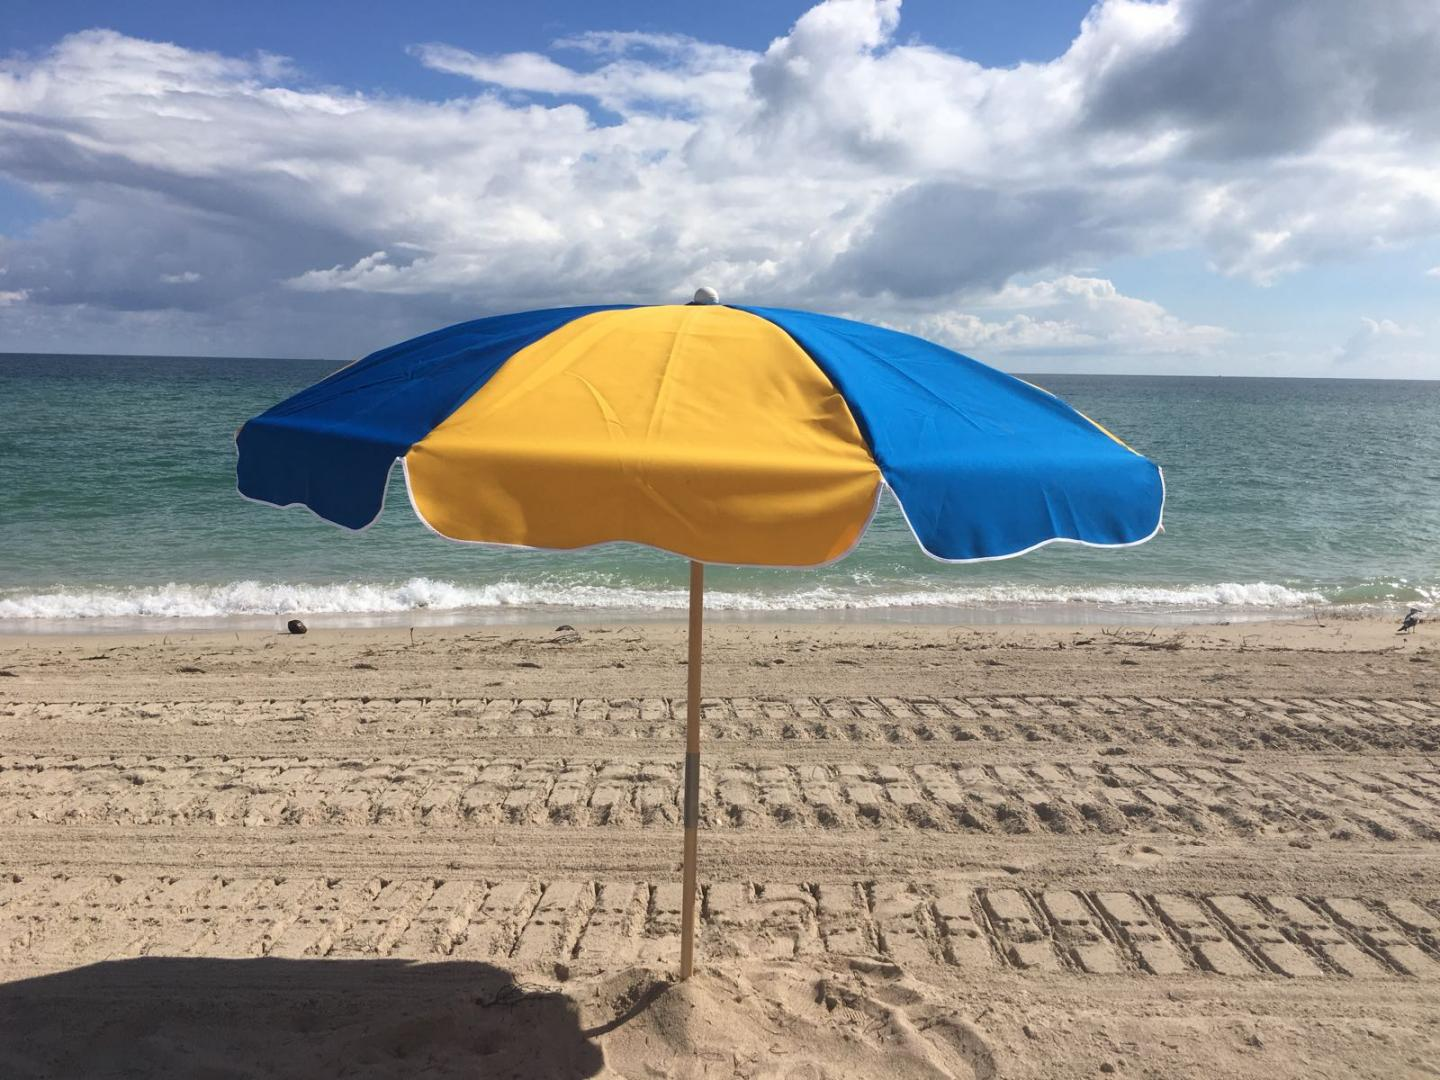 Beach Umbrella 7.50 Ft by 8 Ribs, Push-up,  Steel or Fiberglass Ribs, Canvas, 2 Piece Ash Wood or Aluminum Pole Point (1 Piece Aluminum Point)